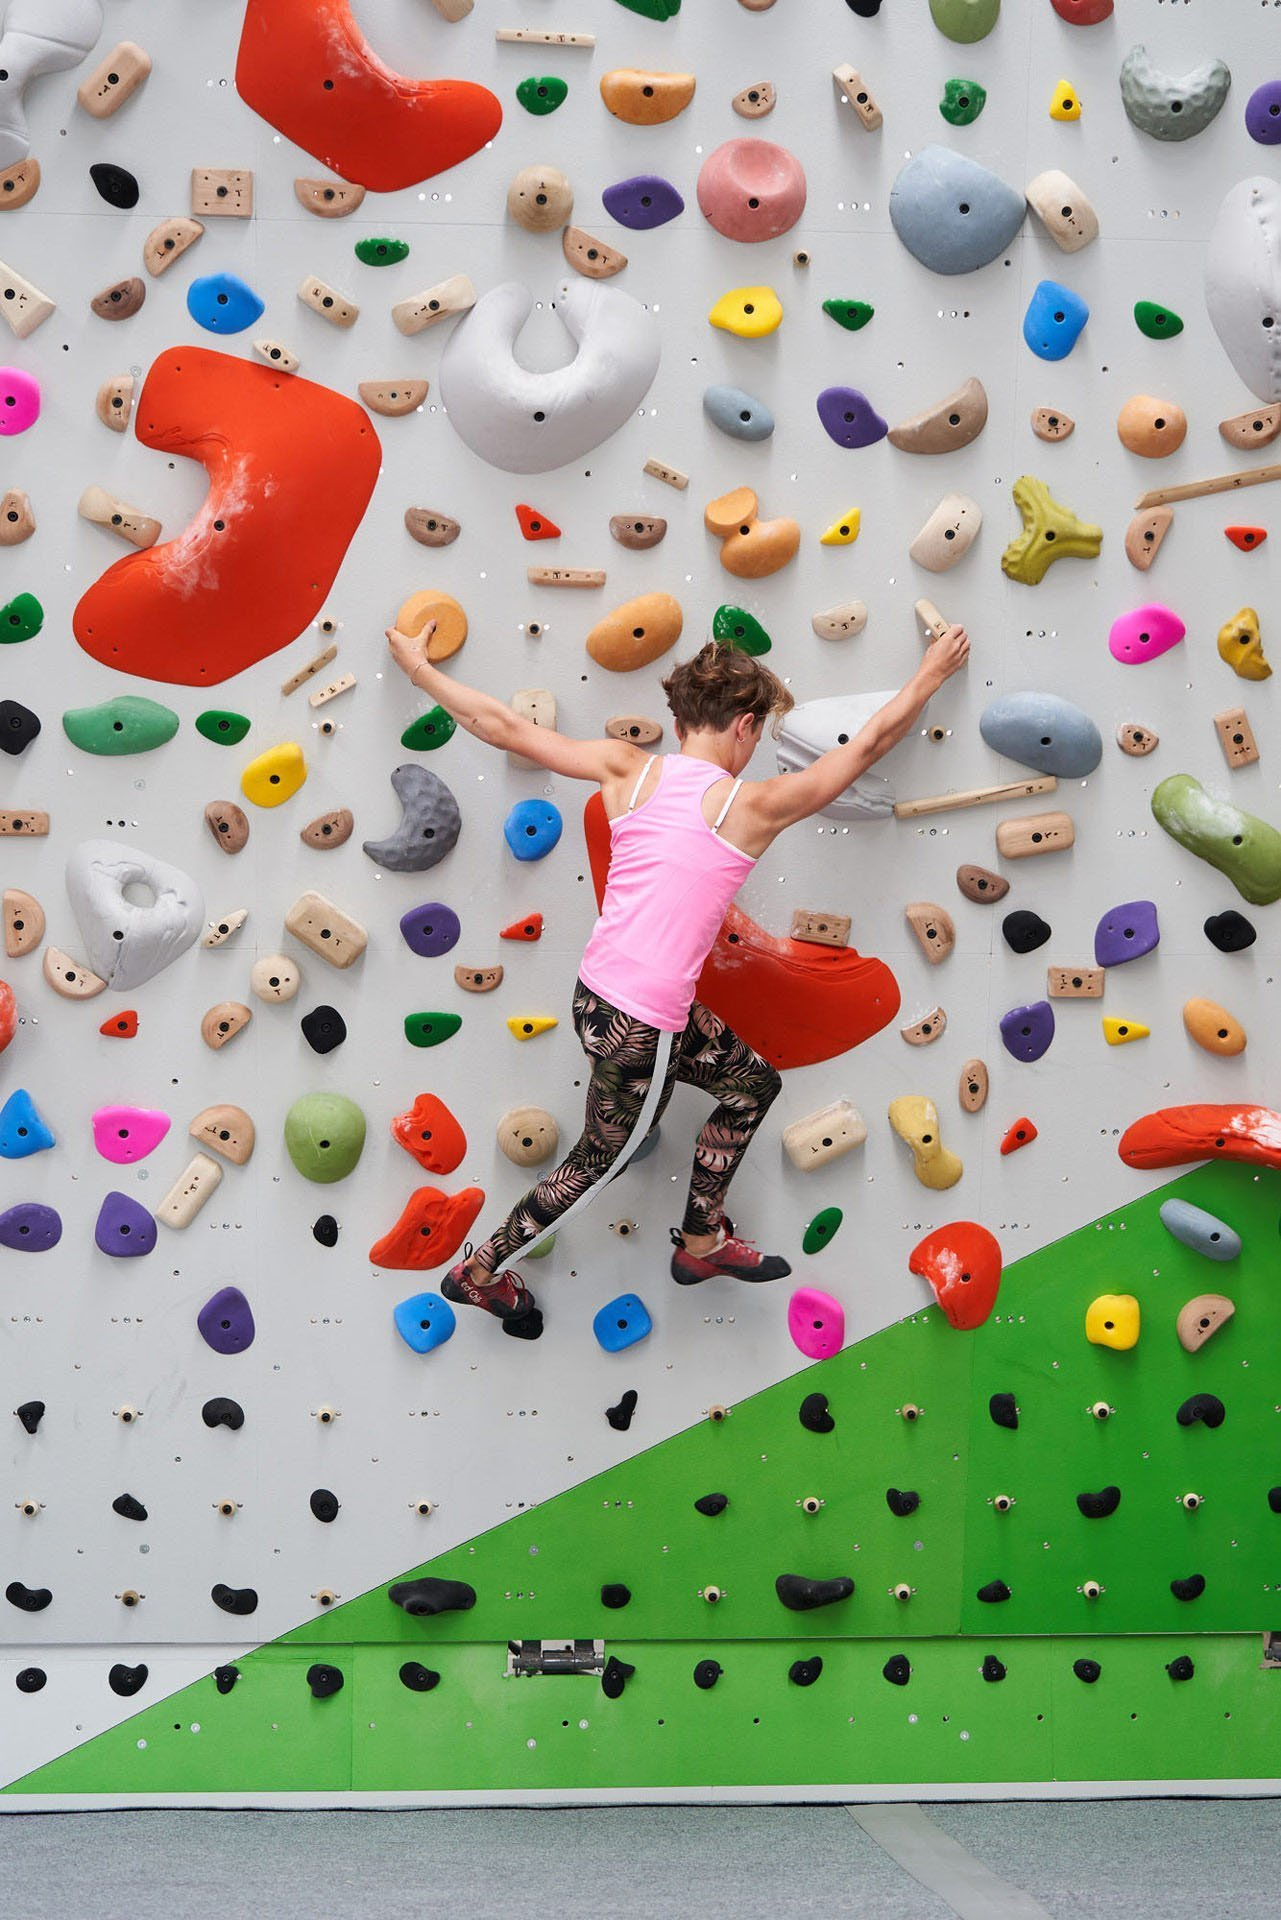 Picture of a girl climbing a colorful bouldering wall